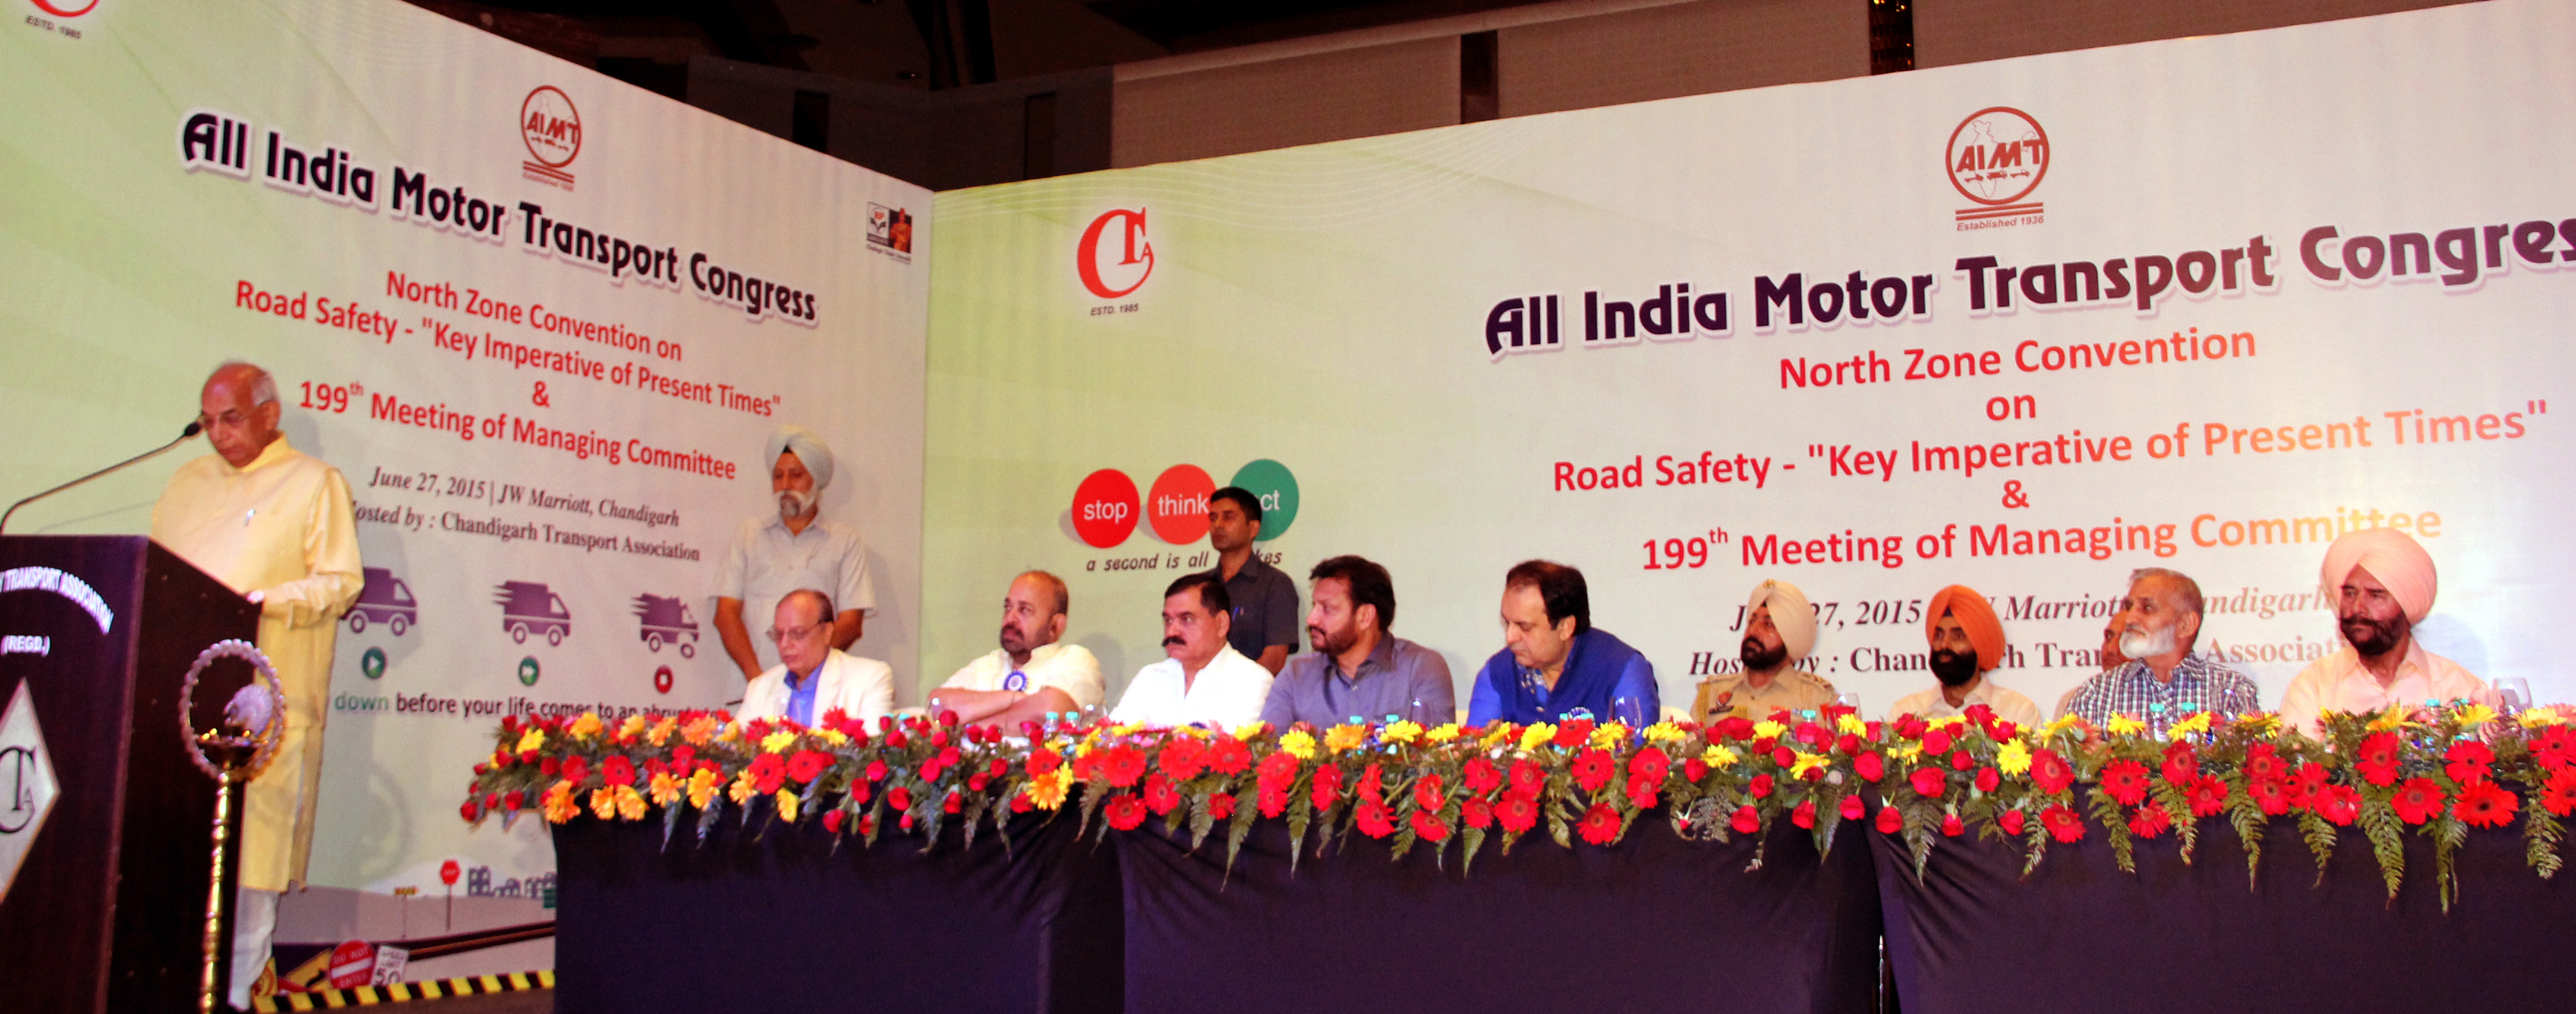 The Governor of Haryana, Punjab and Administrator, UT, Chandigarh, Prof. Kaptan Singh Solanki  addressing North Zone Convention on Road Safety organized by All India Motor Transport Congress and Chandigarh Transport Association at Chandigarh on 27.06.2015.